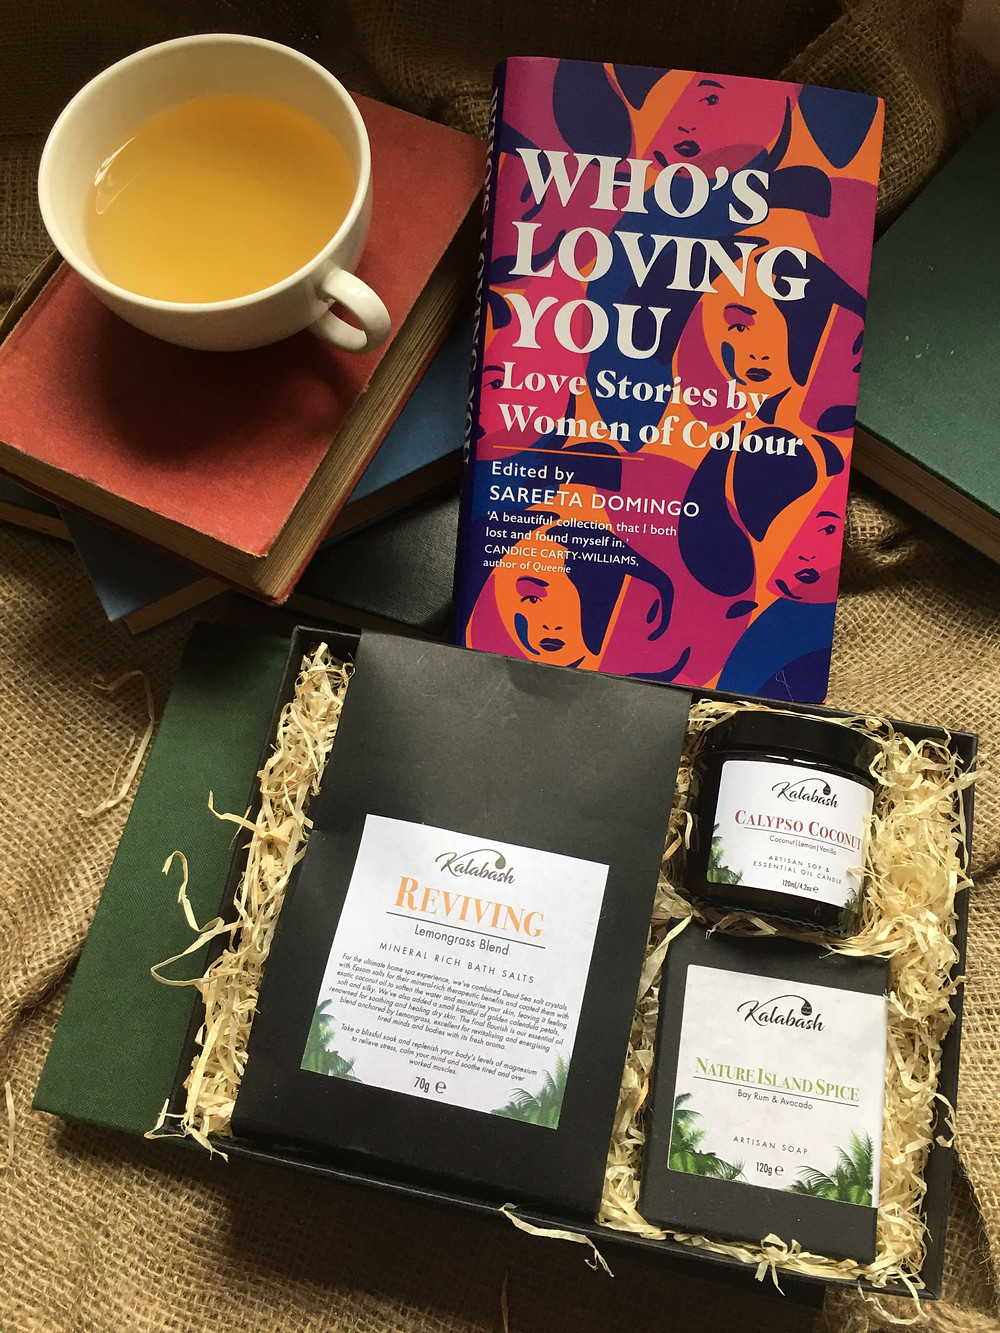 Kalabash Bodycare handmade soap gift set and Who's Loving You book, cup of tea and books on hessian background